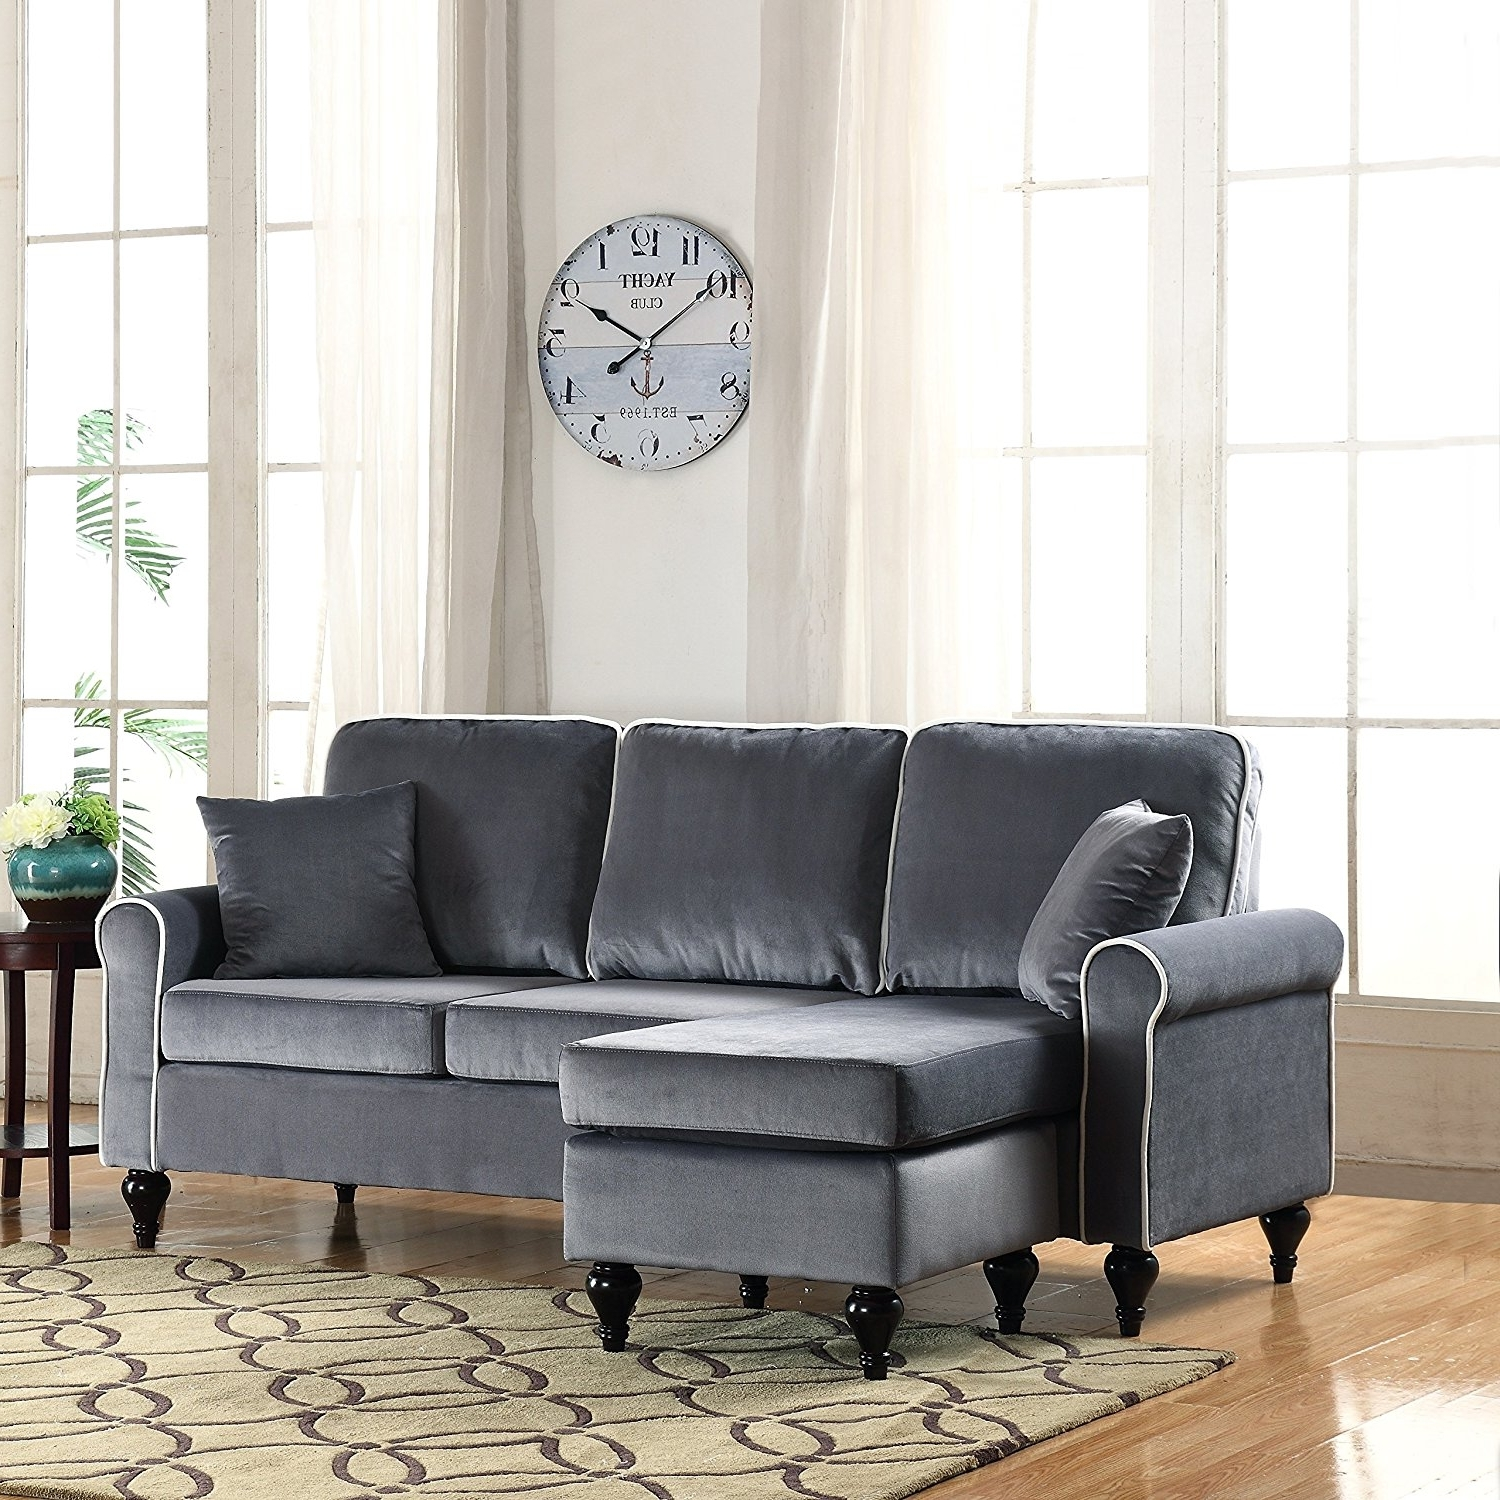 2017 Amazon: Classic And Traditional Small Space Velvet Sectional In Reversible Chaise Sofas (View 9 of 15)